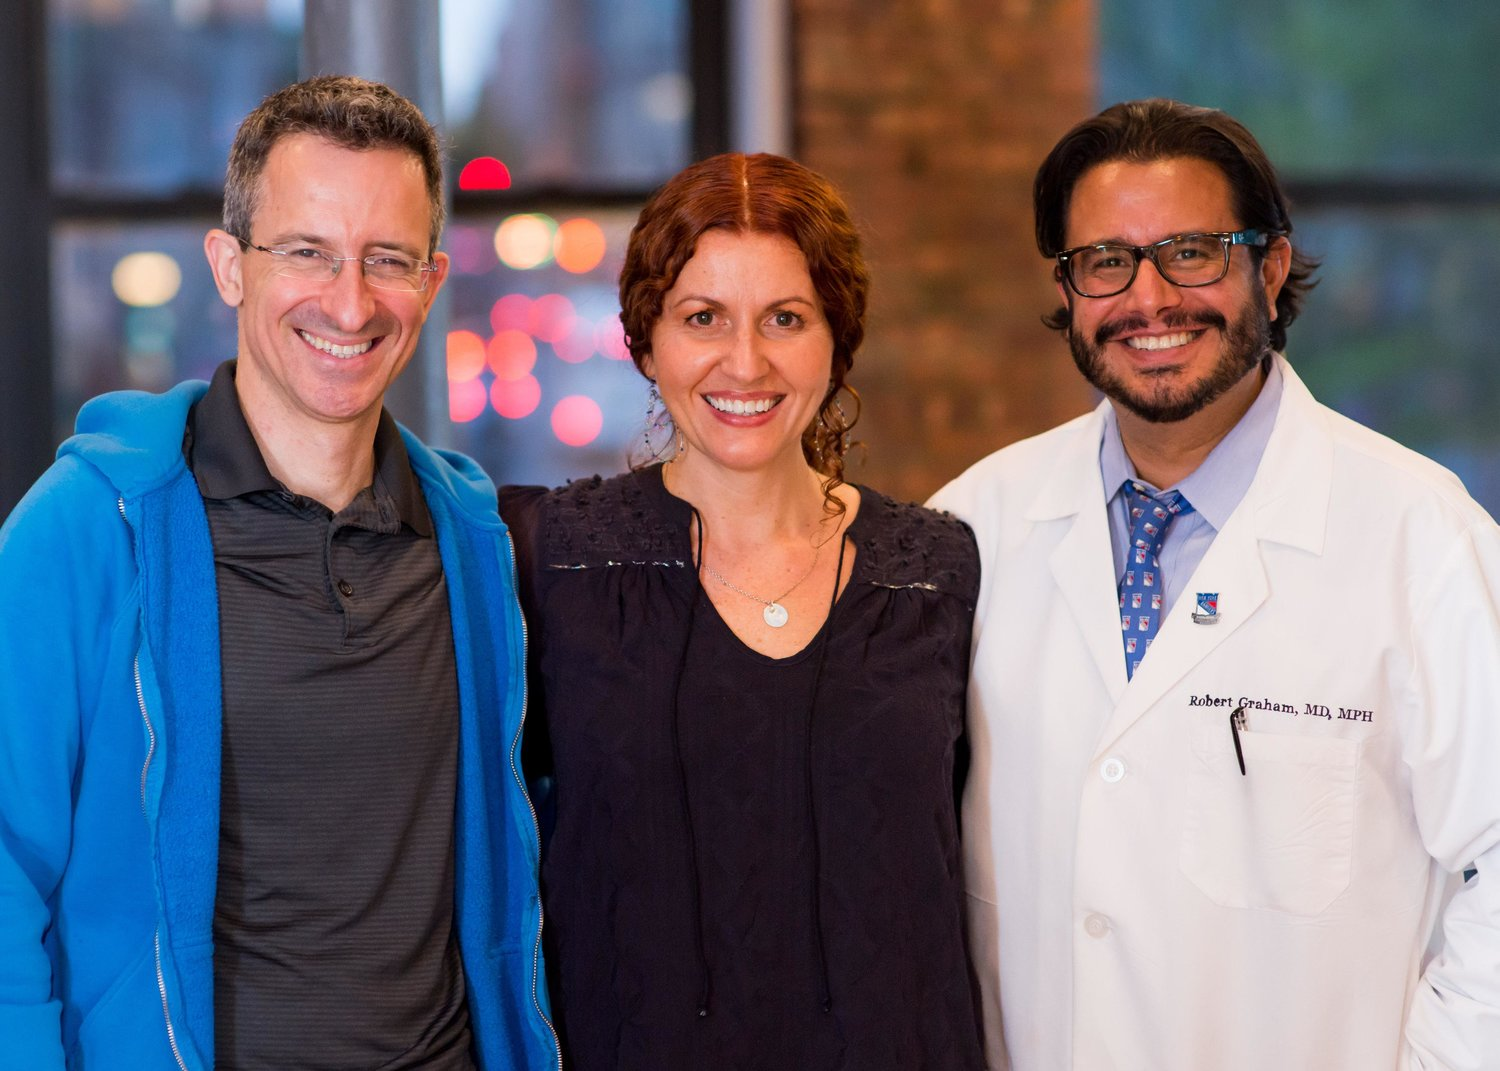 """Tal Ben-Shahar,  PhD, with Julie and Dr. Graham at FRESH """"Happiness As Medicine"""" Workshop. Ben-Shahar taught the most popular course in the Harvard's history: Positive Psychology."""